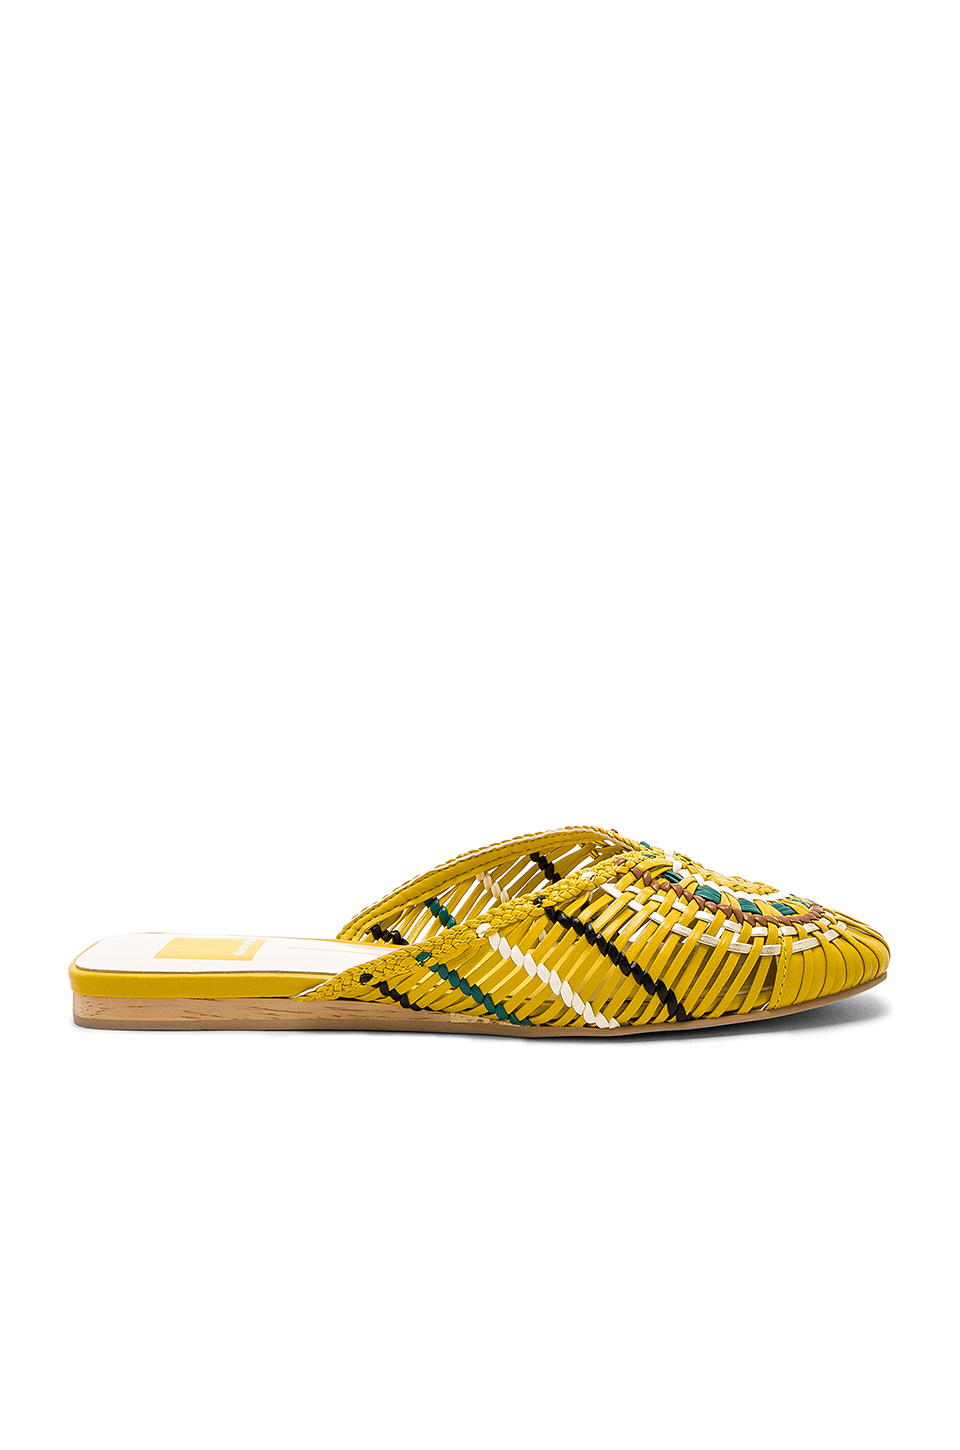 Dolce Vita Baez Slide in Yellow Multi